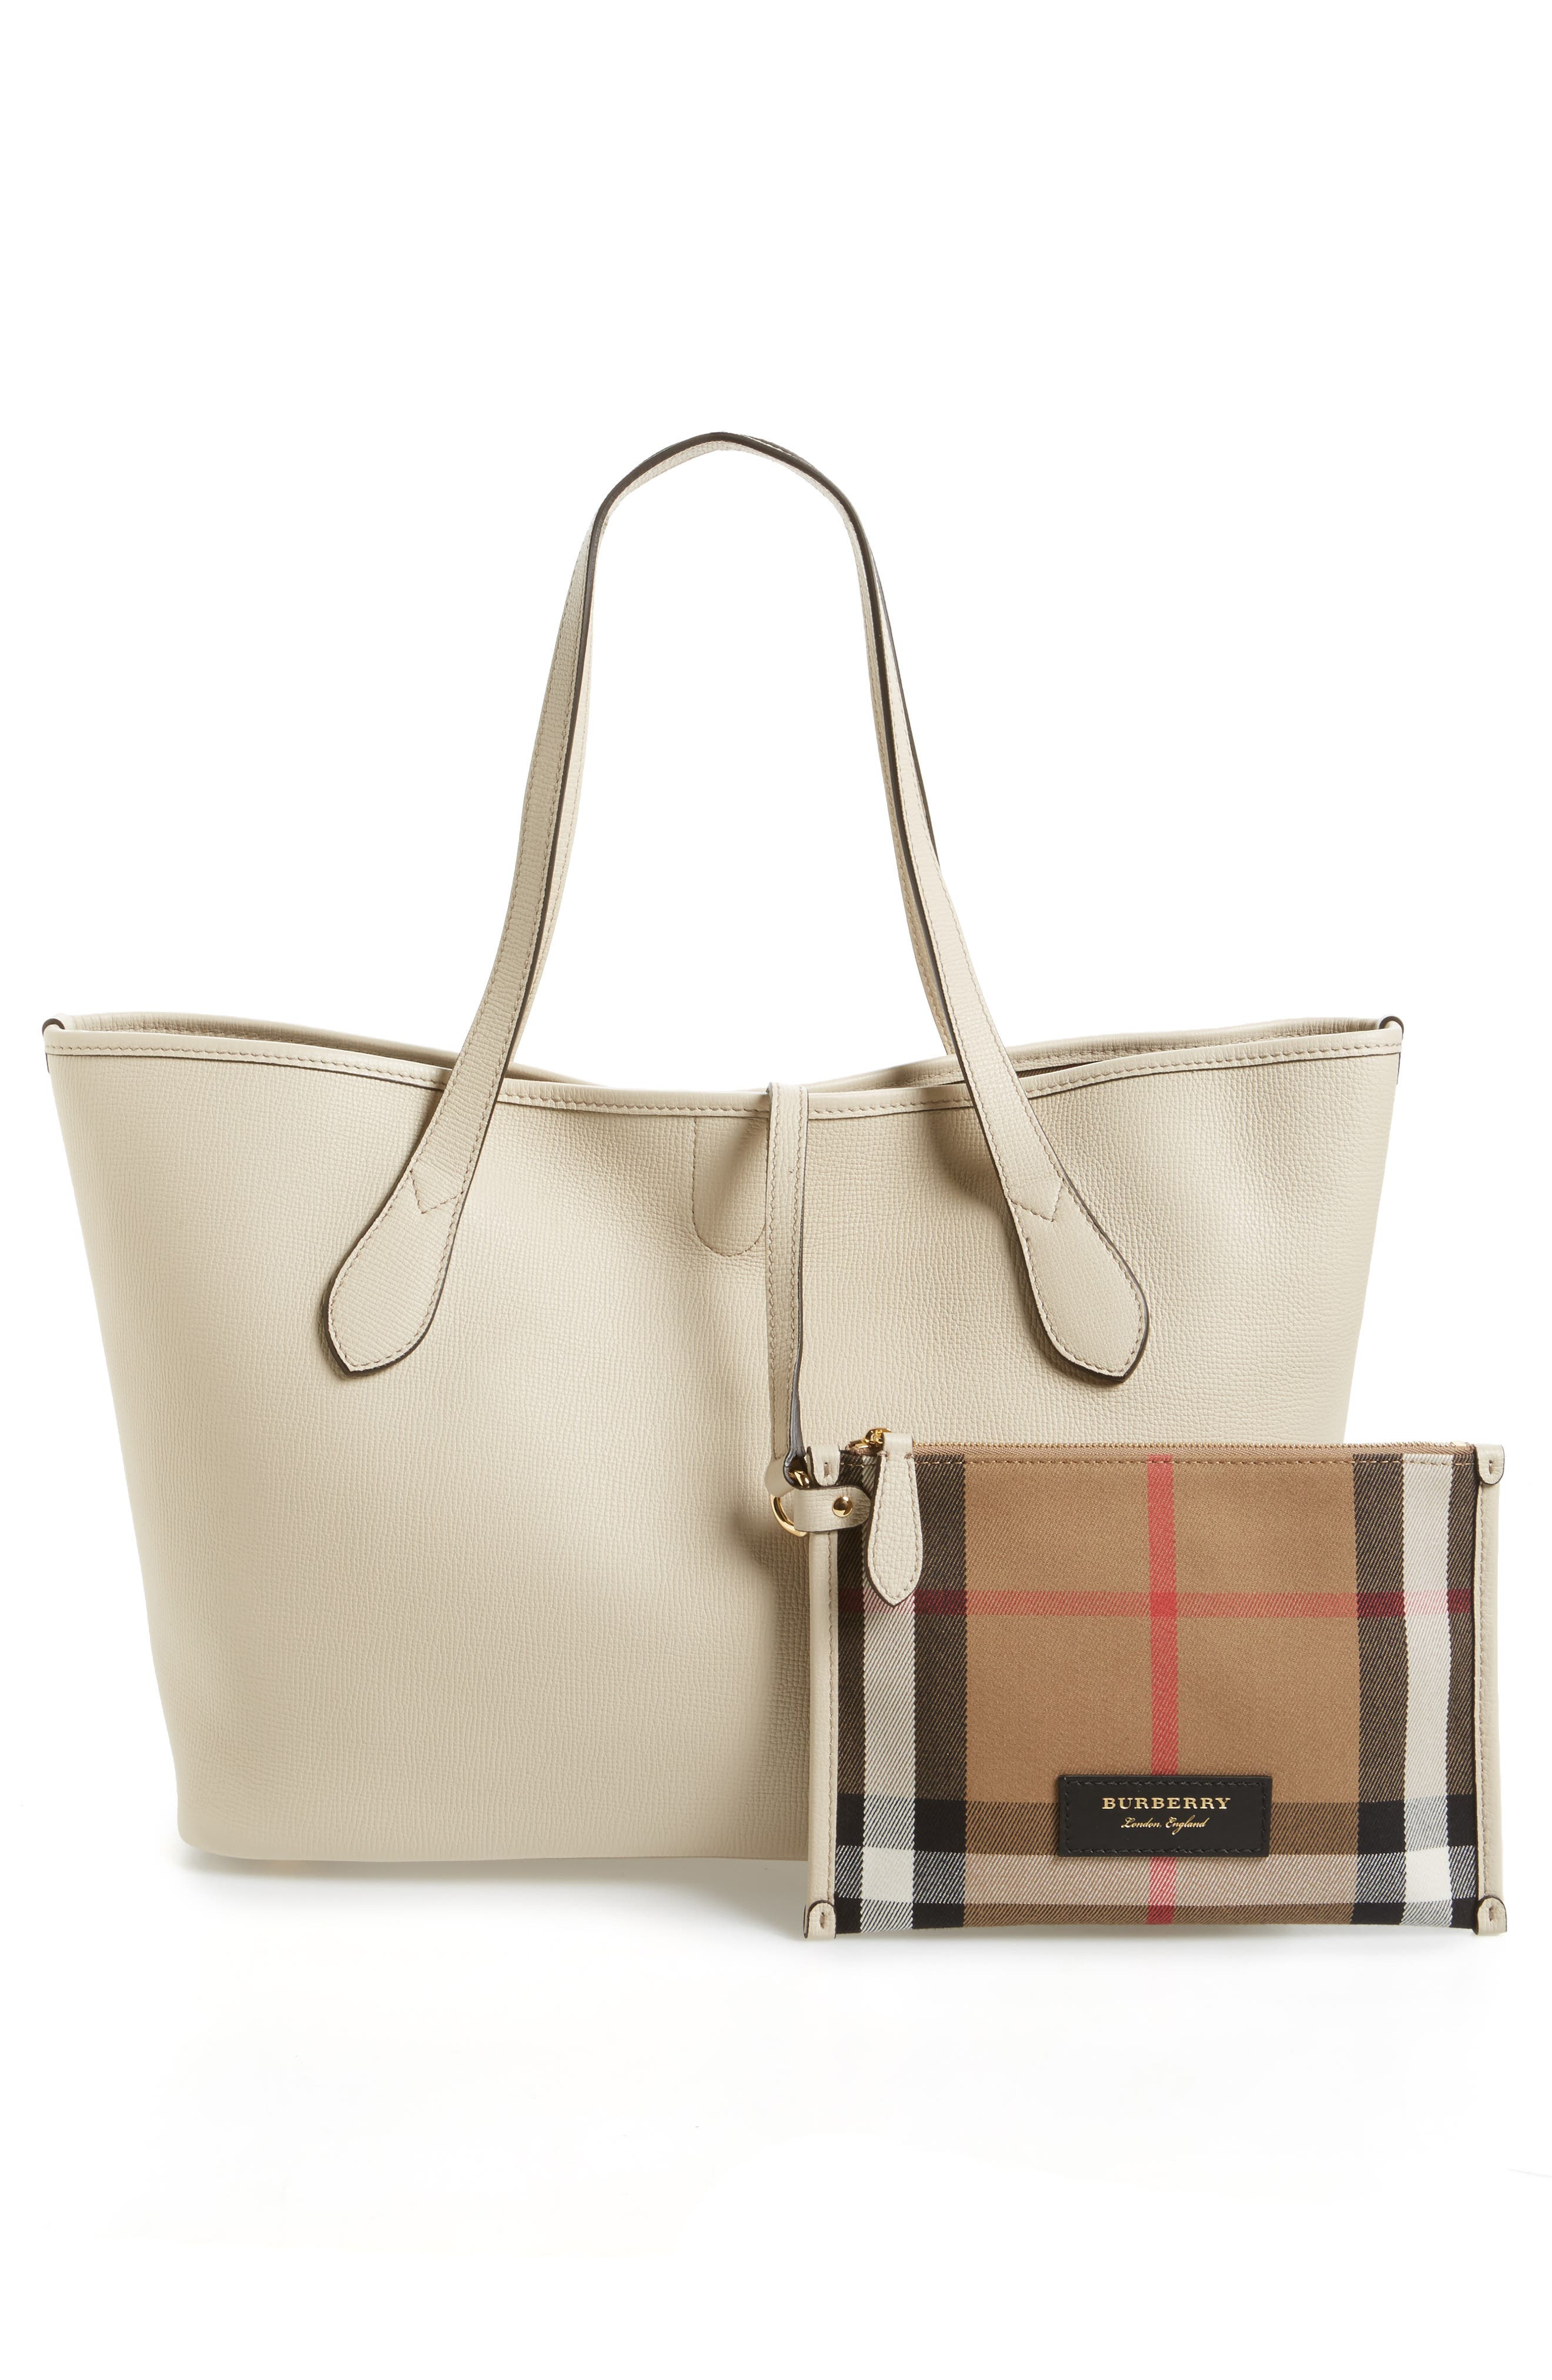 Alternate Image 3  - Burberry Medium Honeybrook Leather Tote